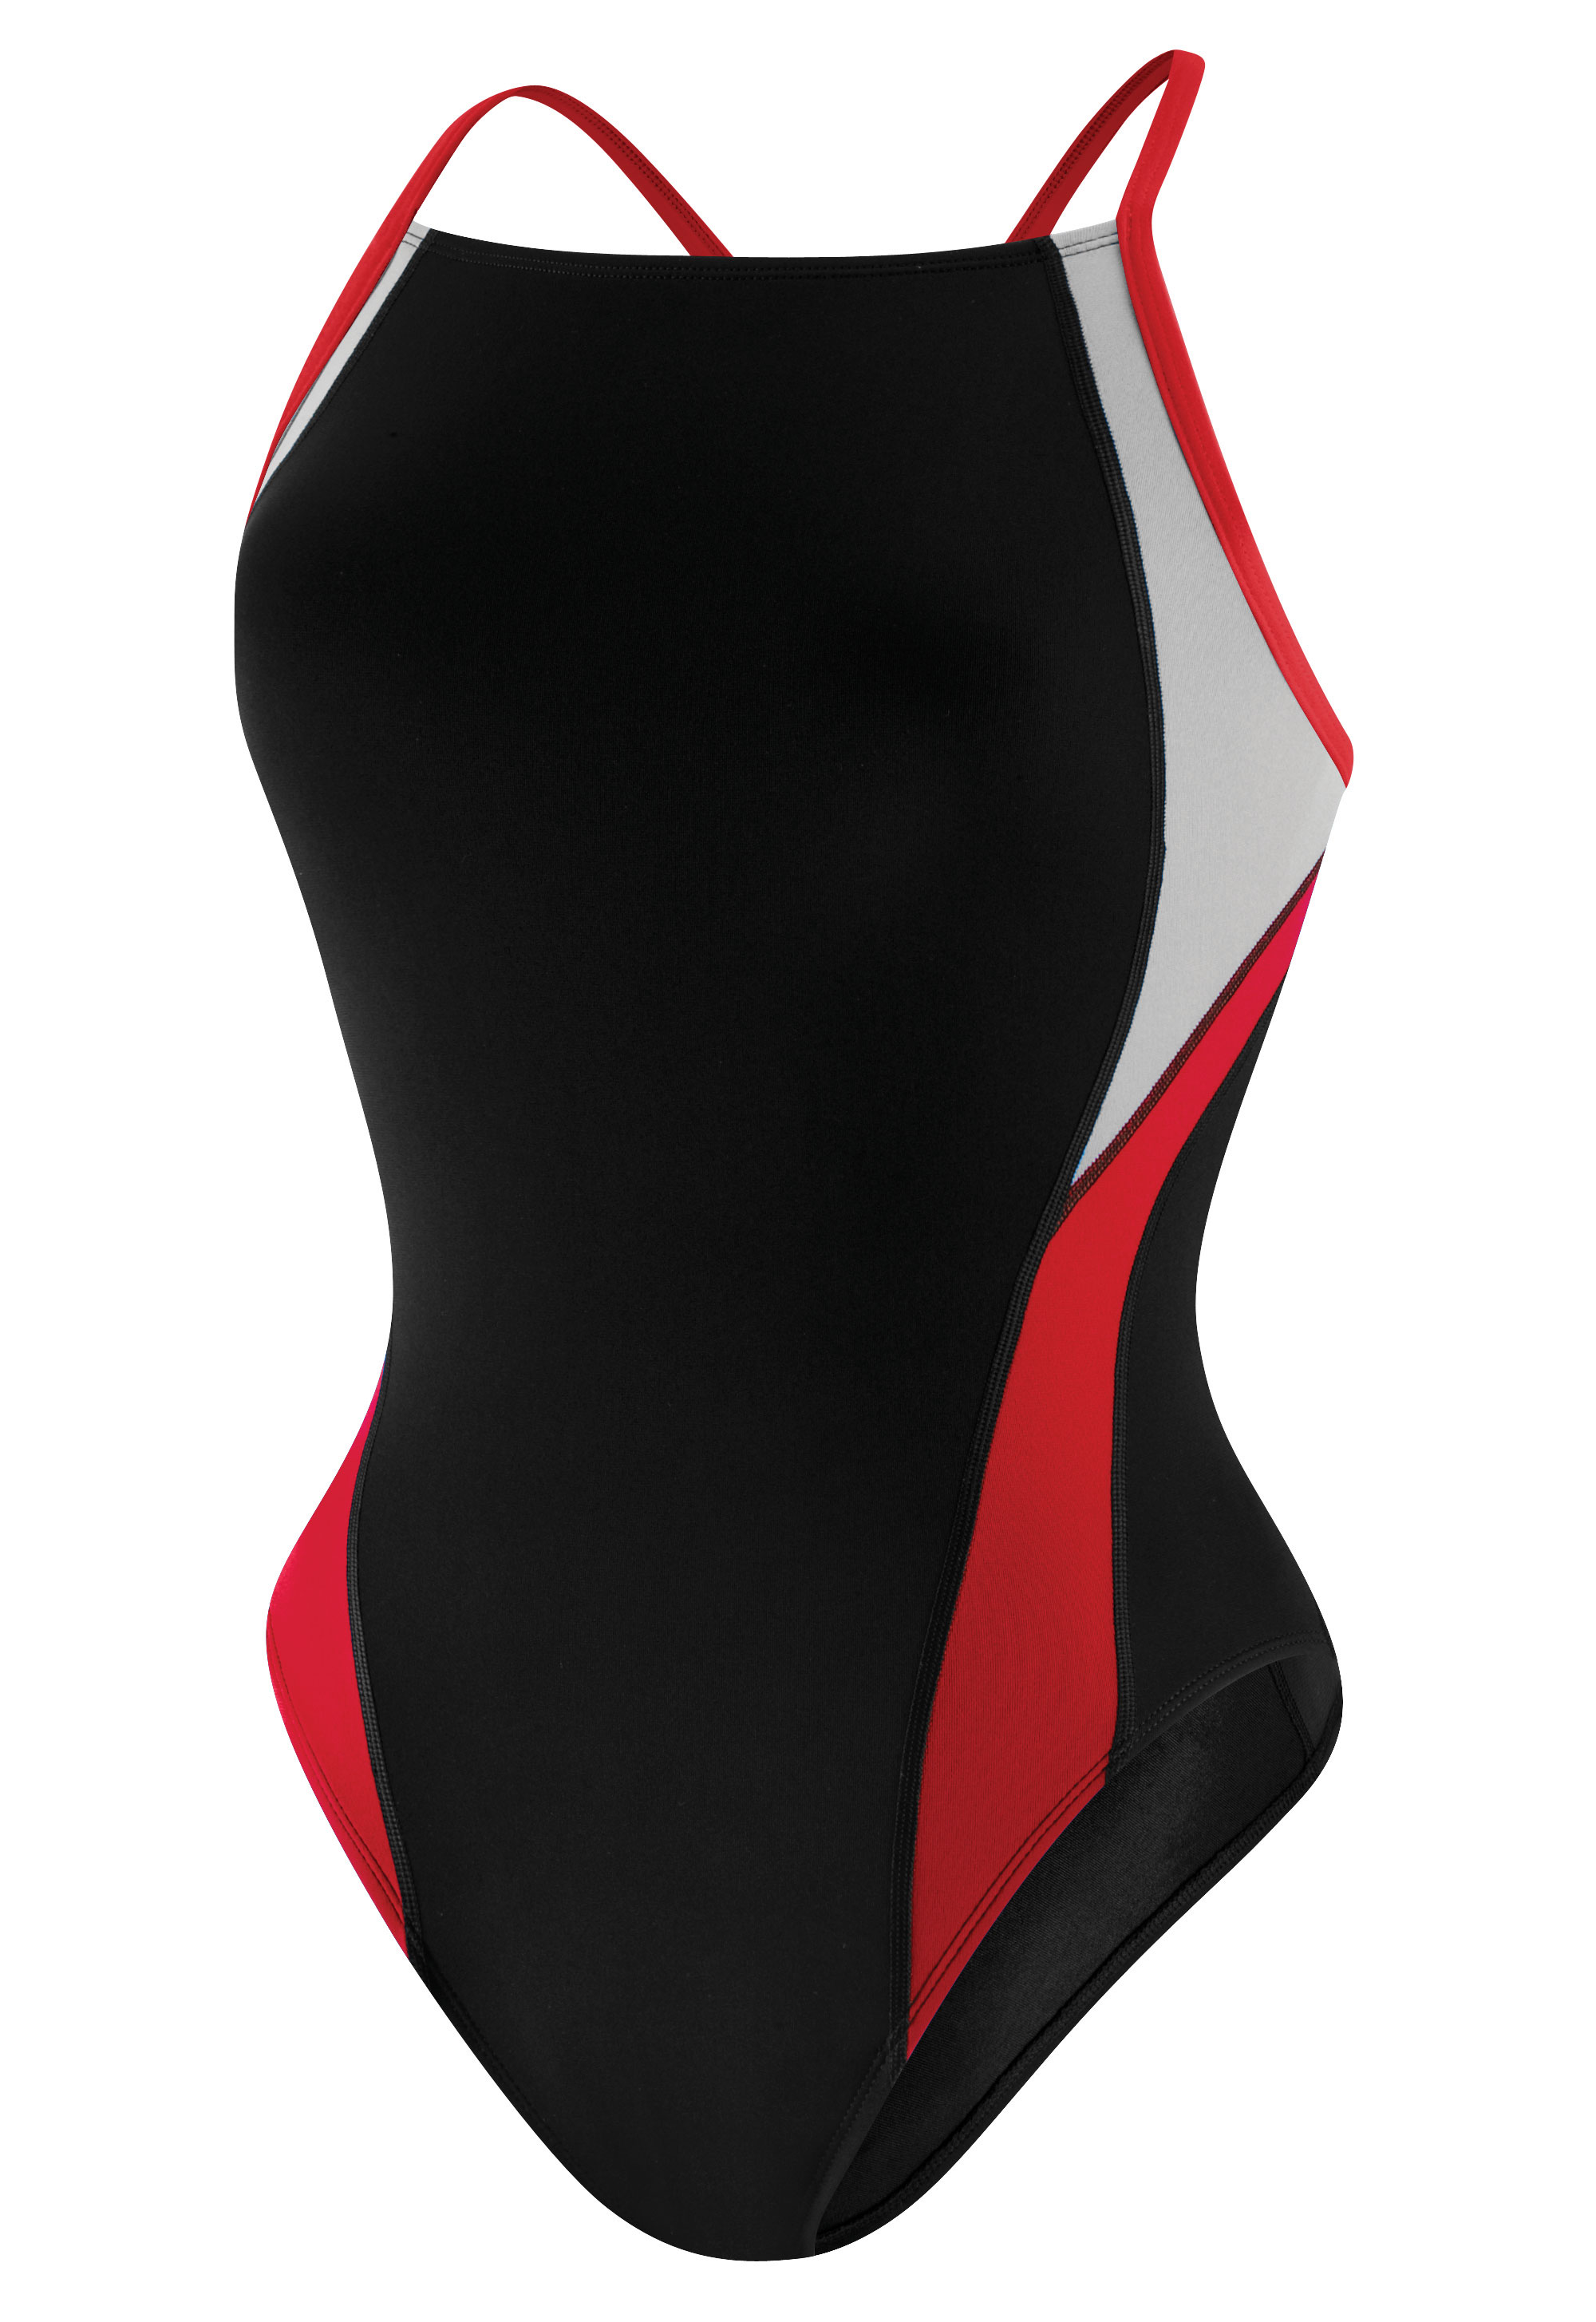 96695a15d9 Speedo Endurance+ Launch Splice Cross Back: Varsity Swim